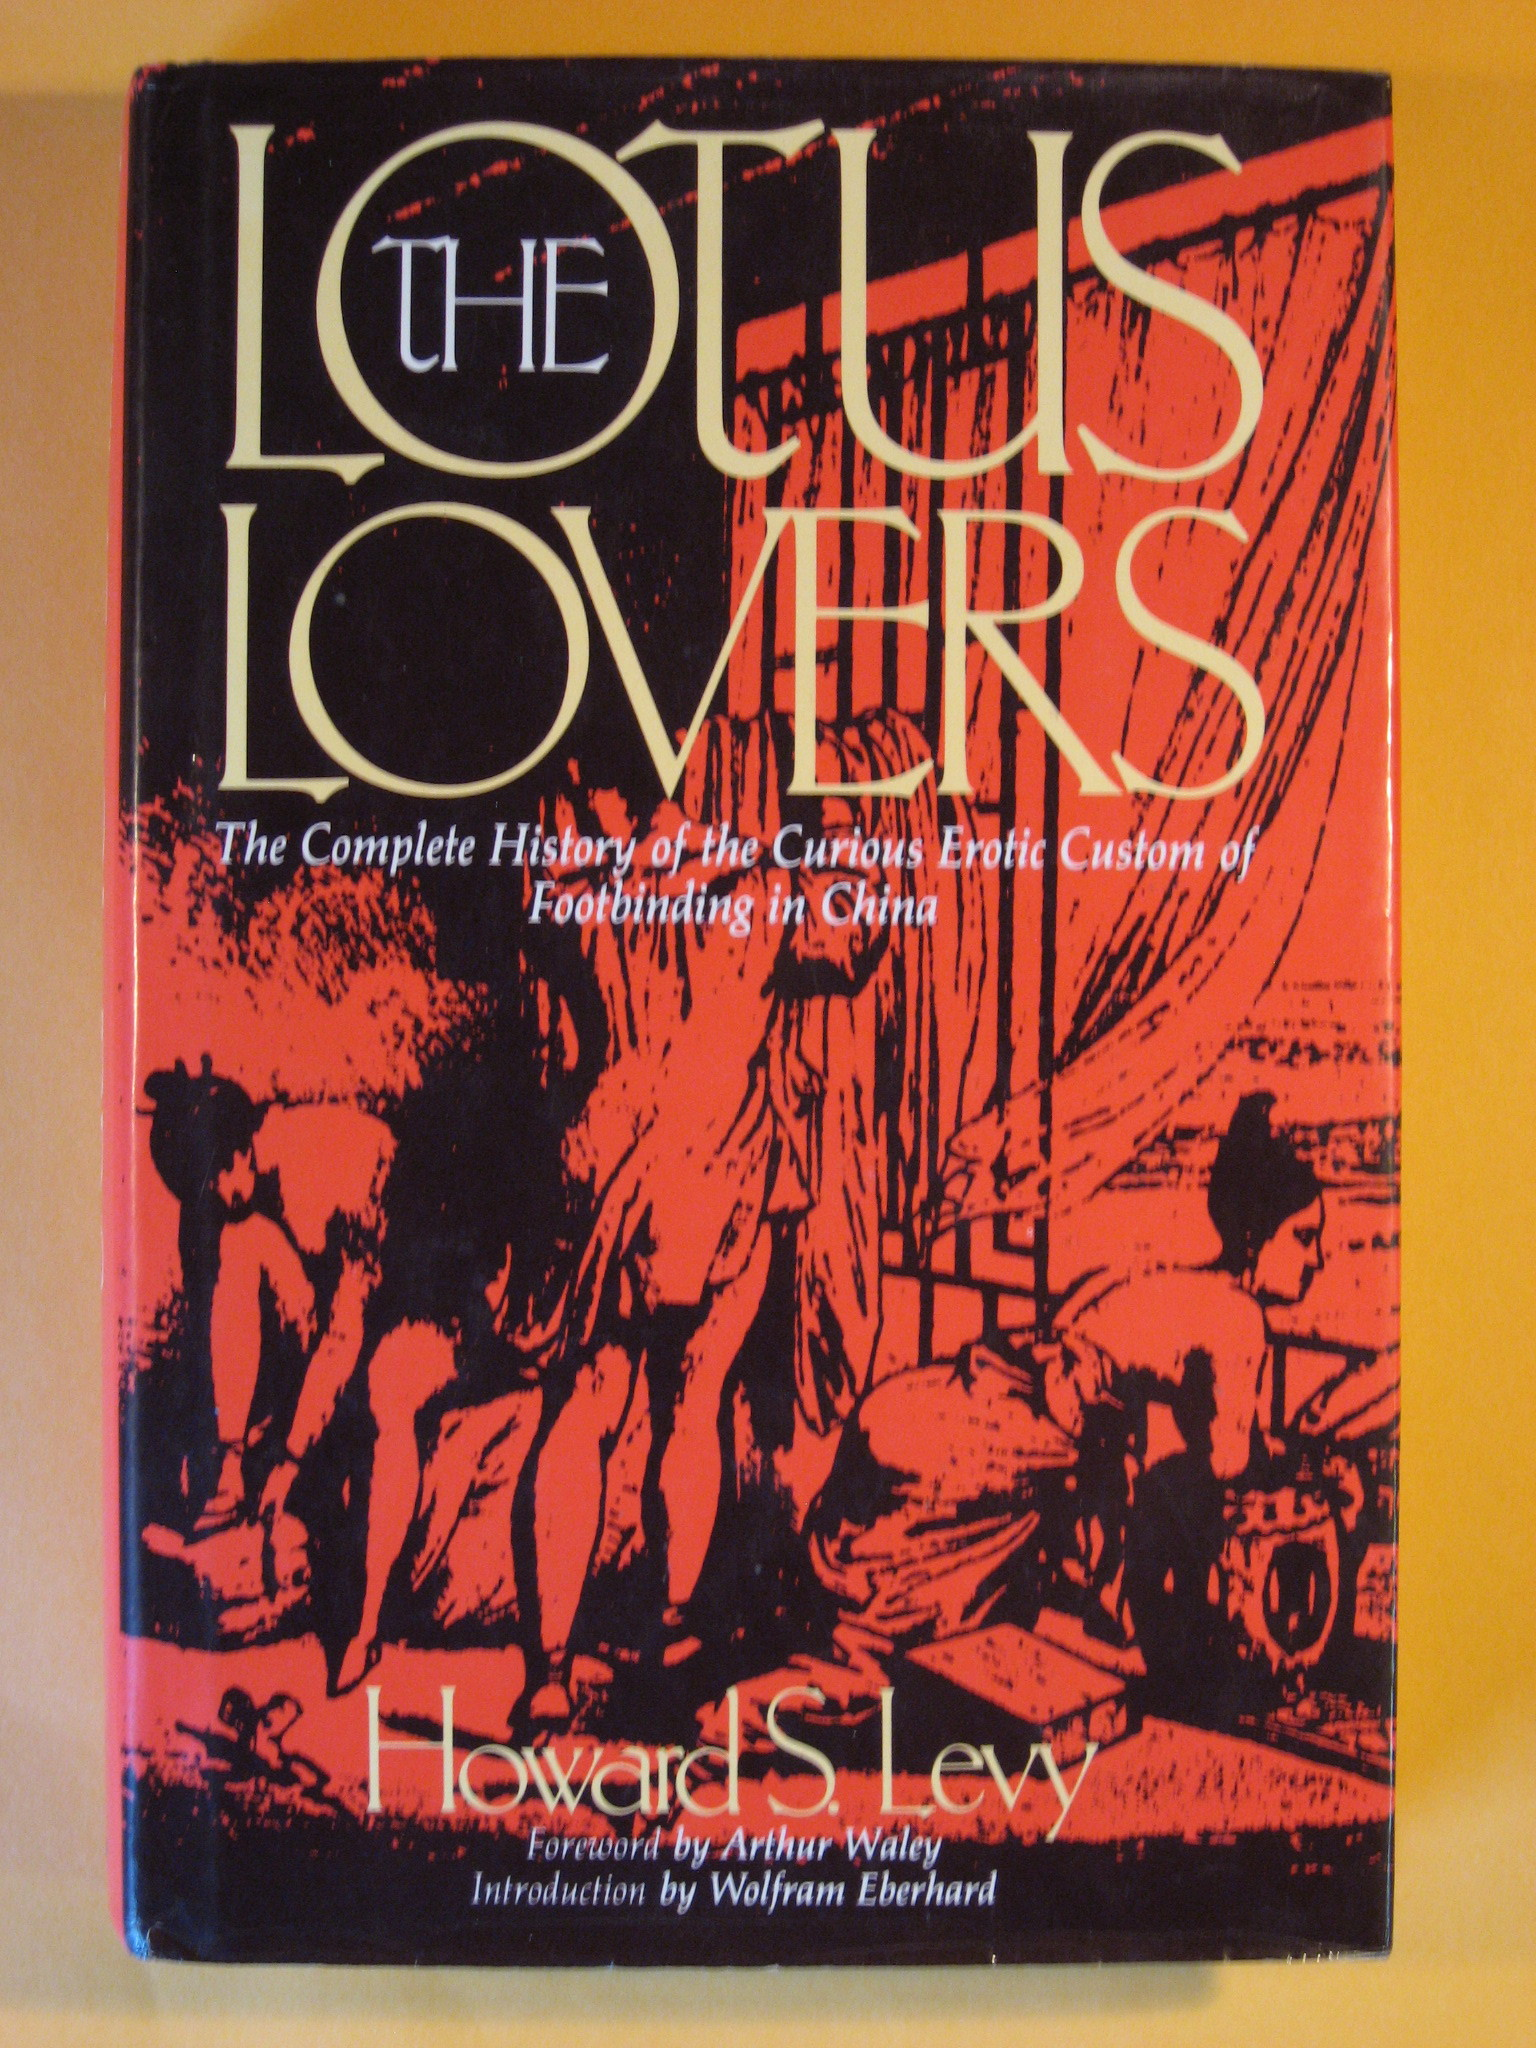 Lotus Lovers : The Complete History of the Curious Erotic Custom of Footbinding in China, The, Levy, Howard S.